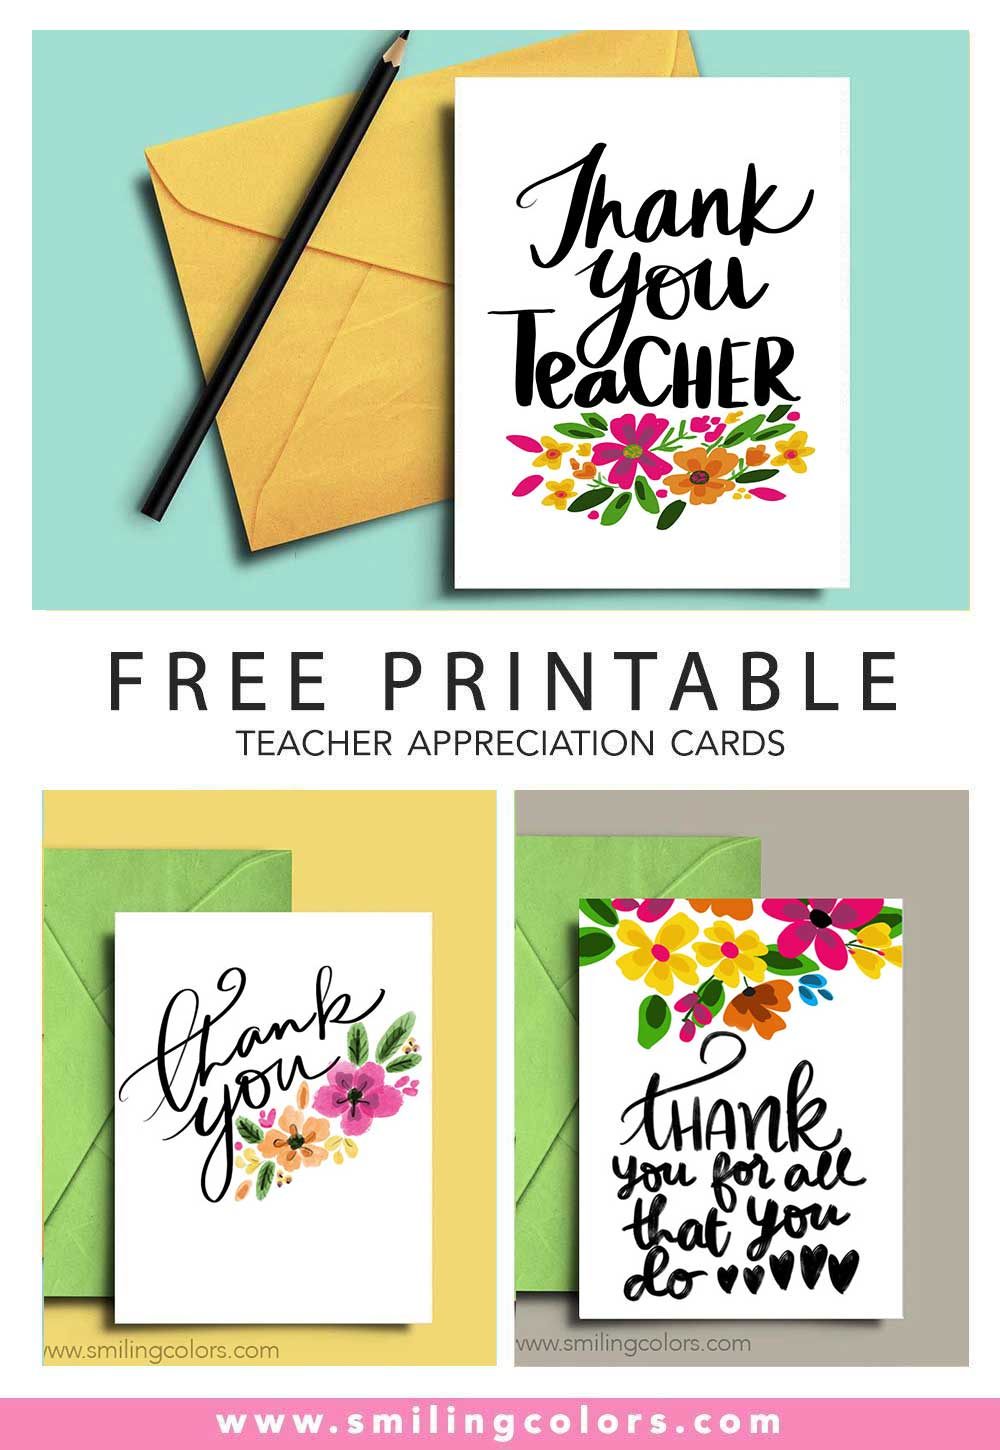 This is an image of Printable Thank You Cards intended for color